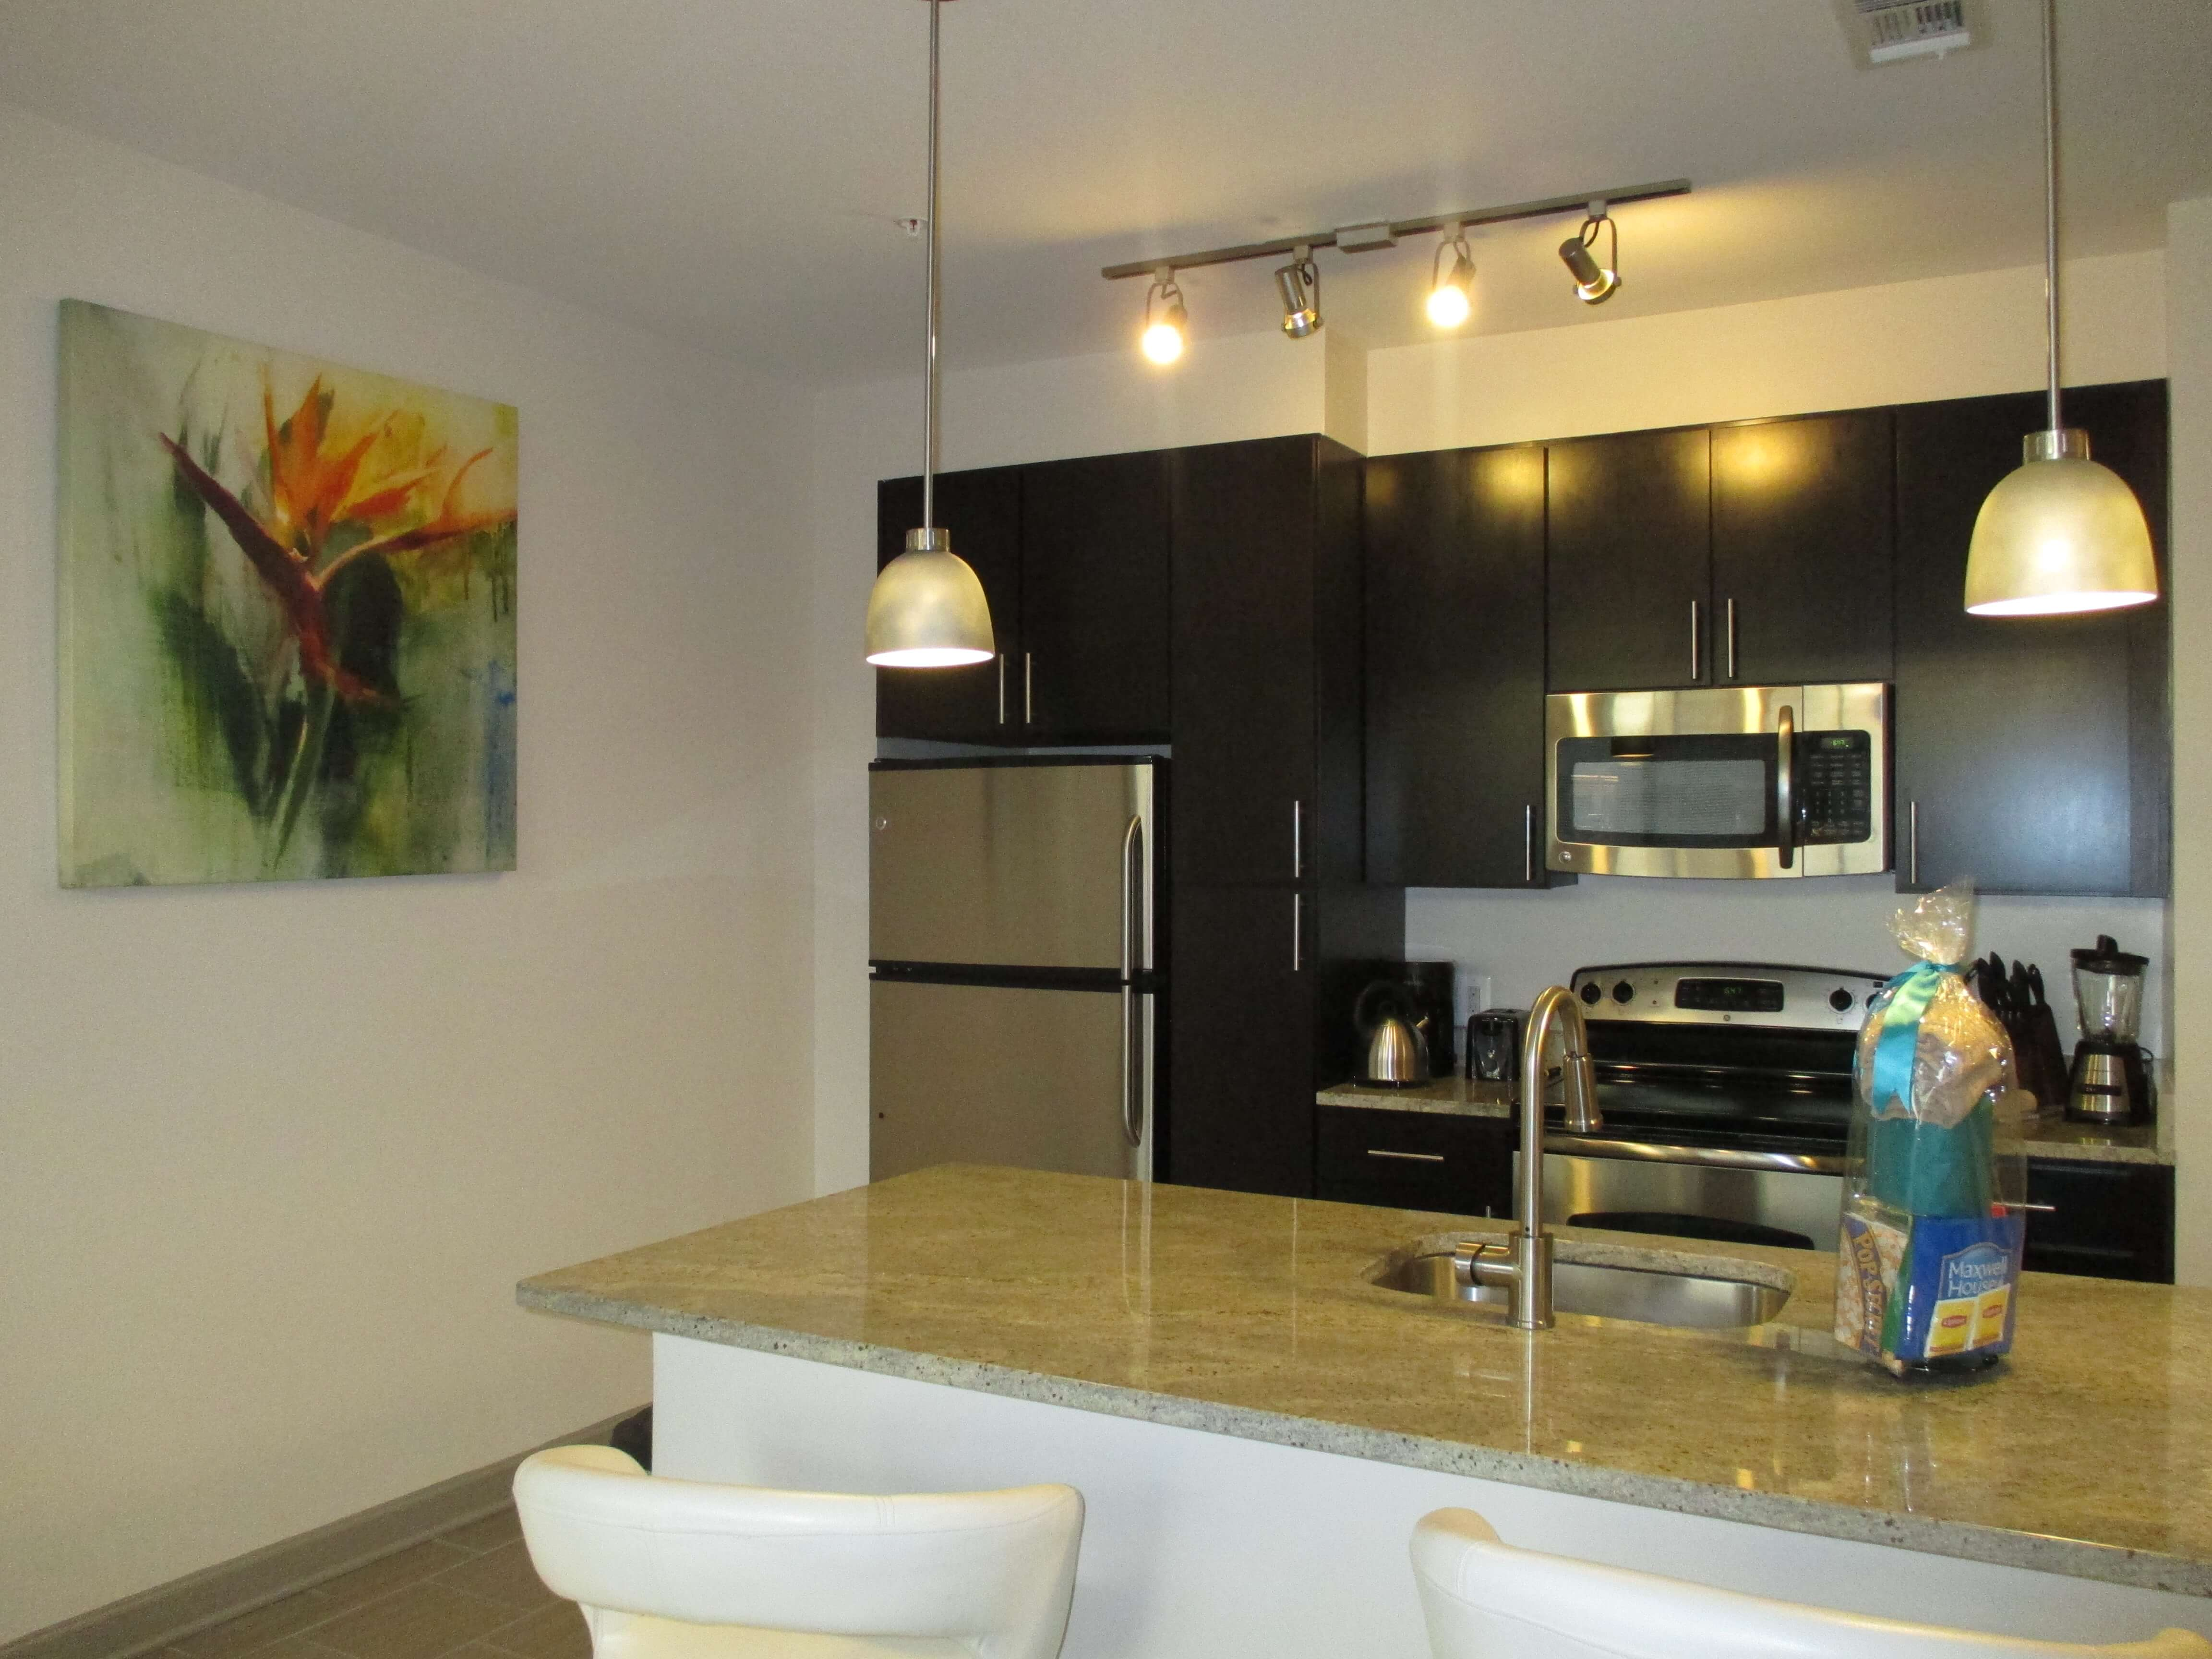 2 Bedroom Apartments In Baltimore City 28 Images Baltimore East Furnished 1 Bedroom